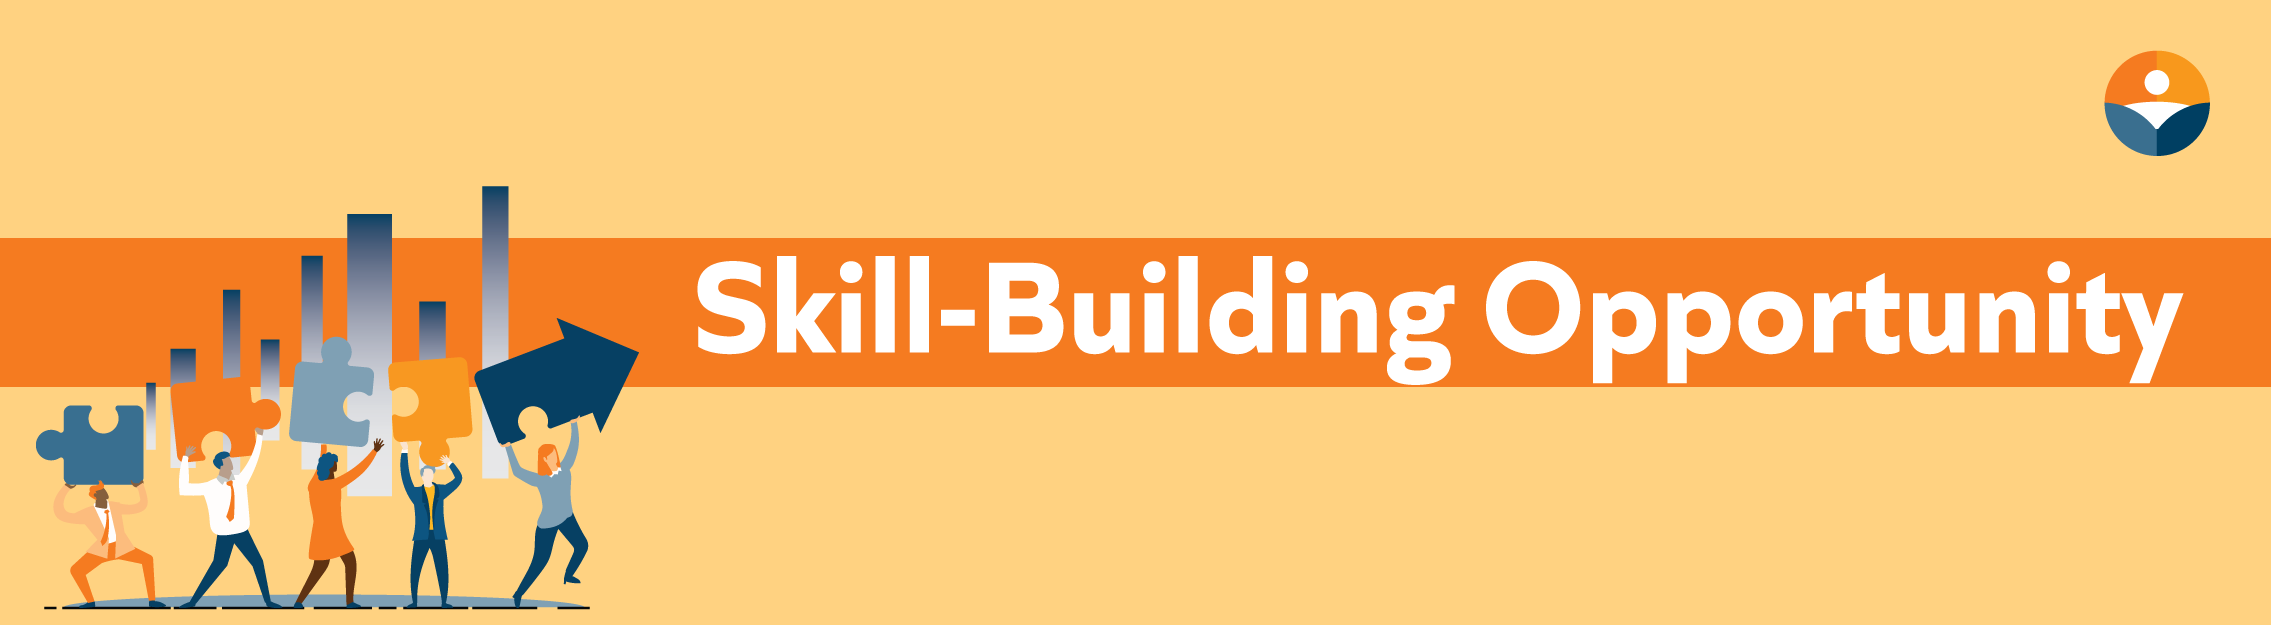 Skill-Building Opportunity Banner